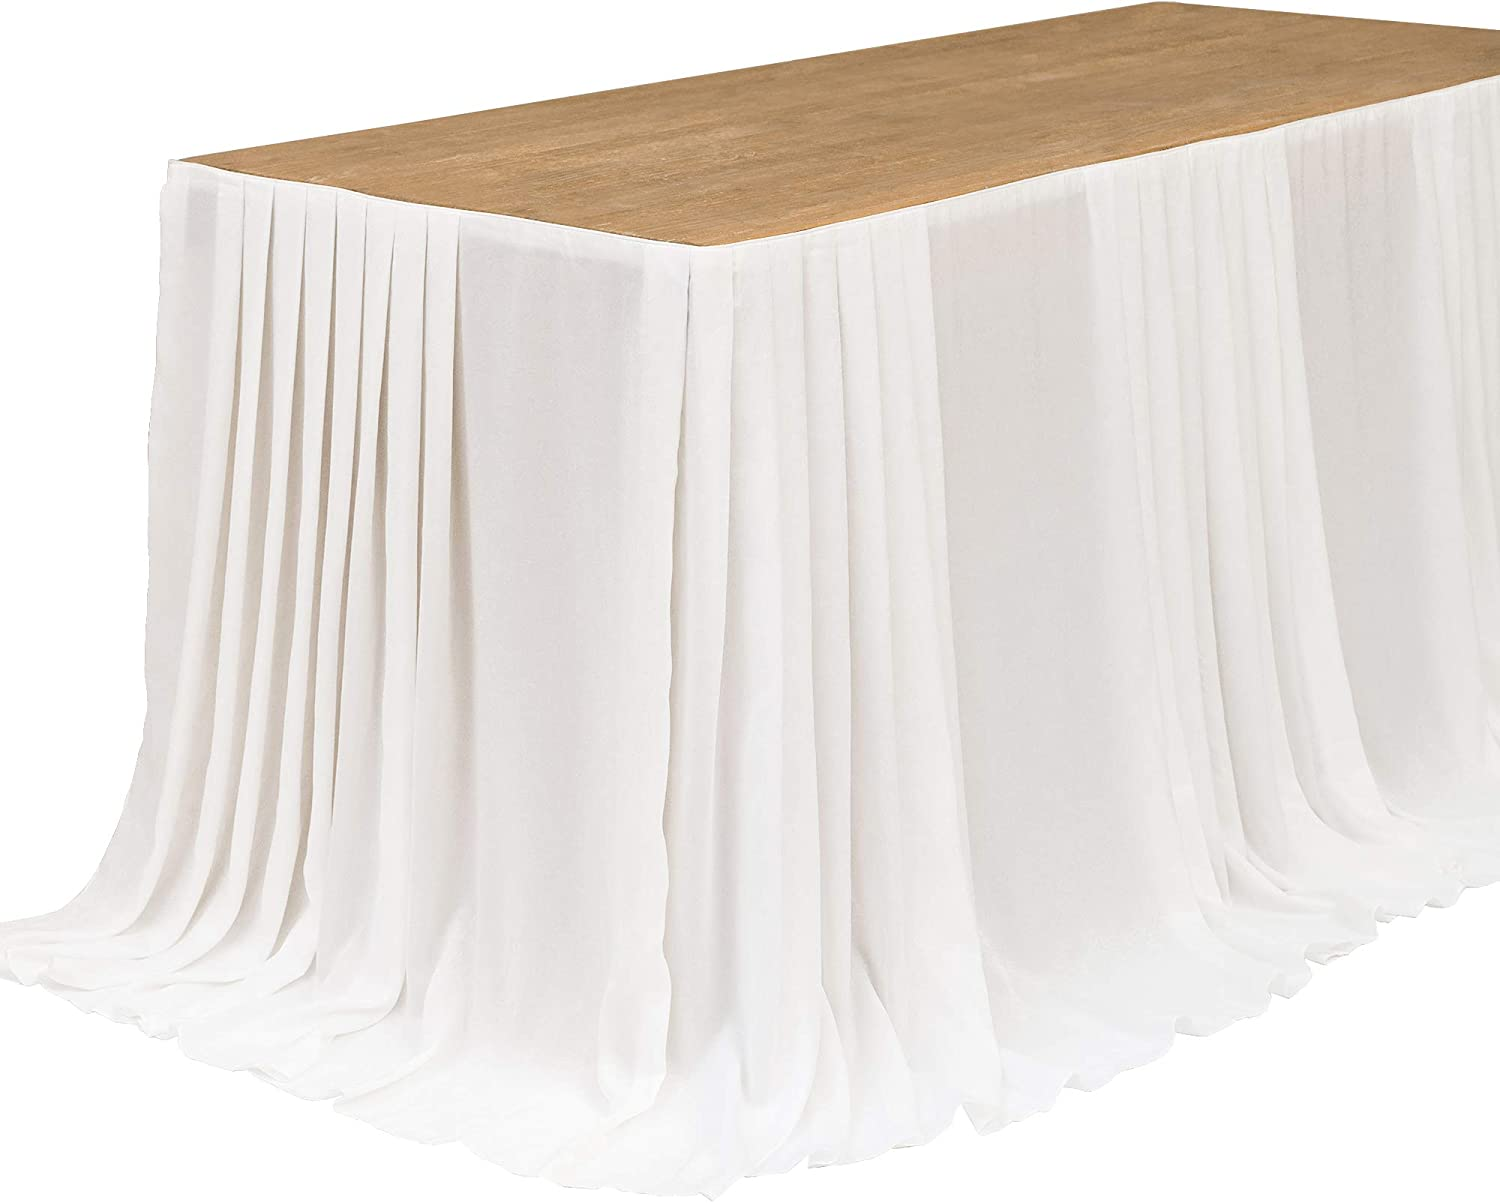 Ling's moment 9FT Table Skirt Extra Long Tablecloth for Wedding Sweetheart Table Reception Table Bridal Shower Birthday Party Cake Table Decoration